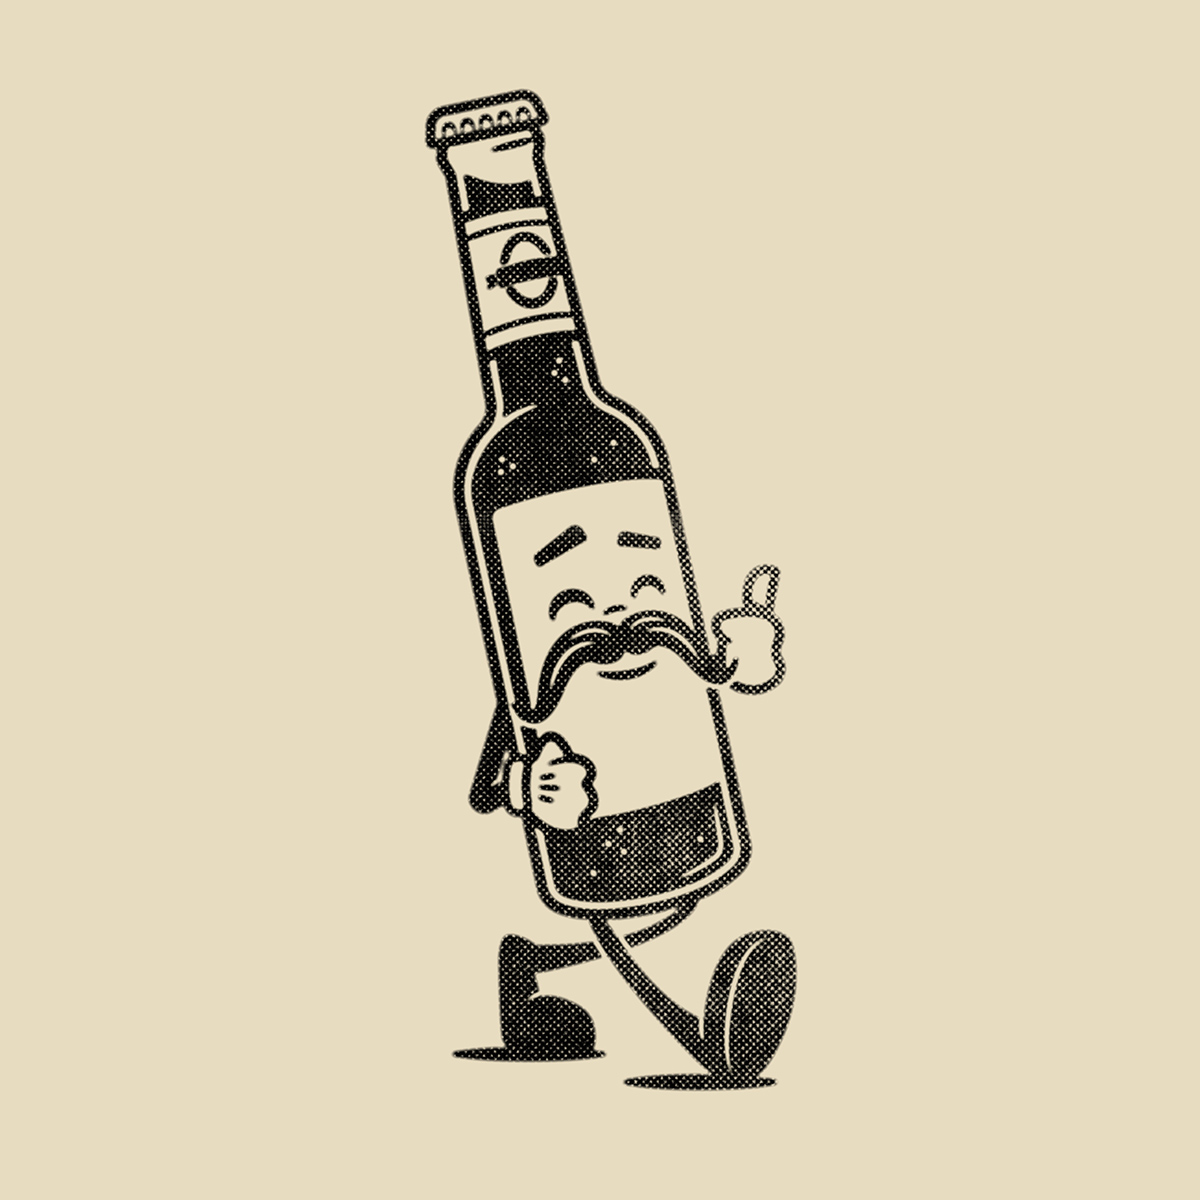 Various-Characters_bottle-2-1